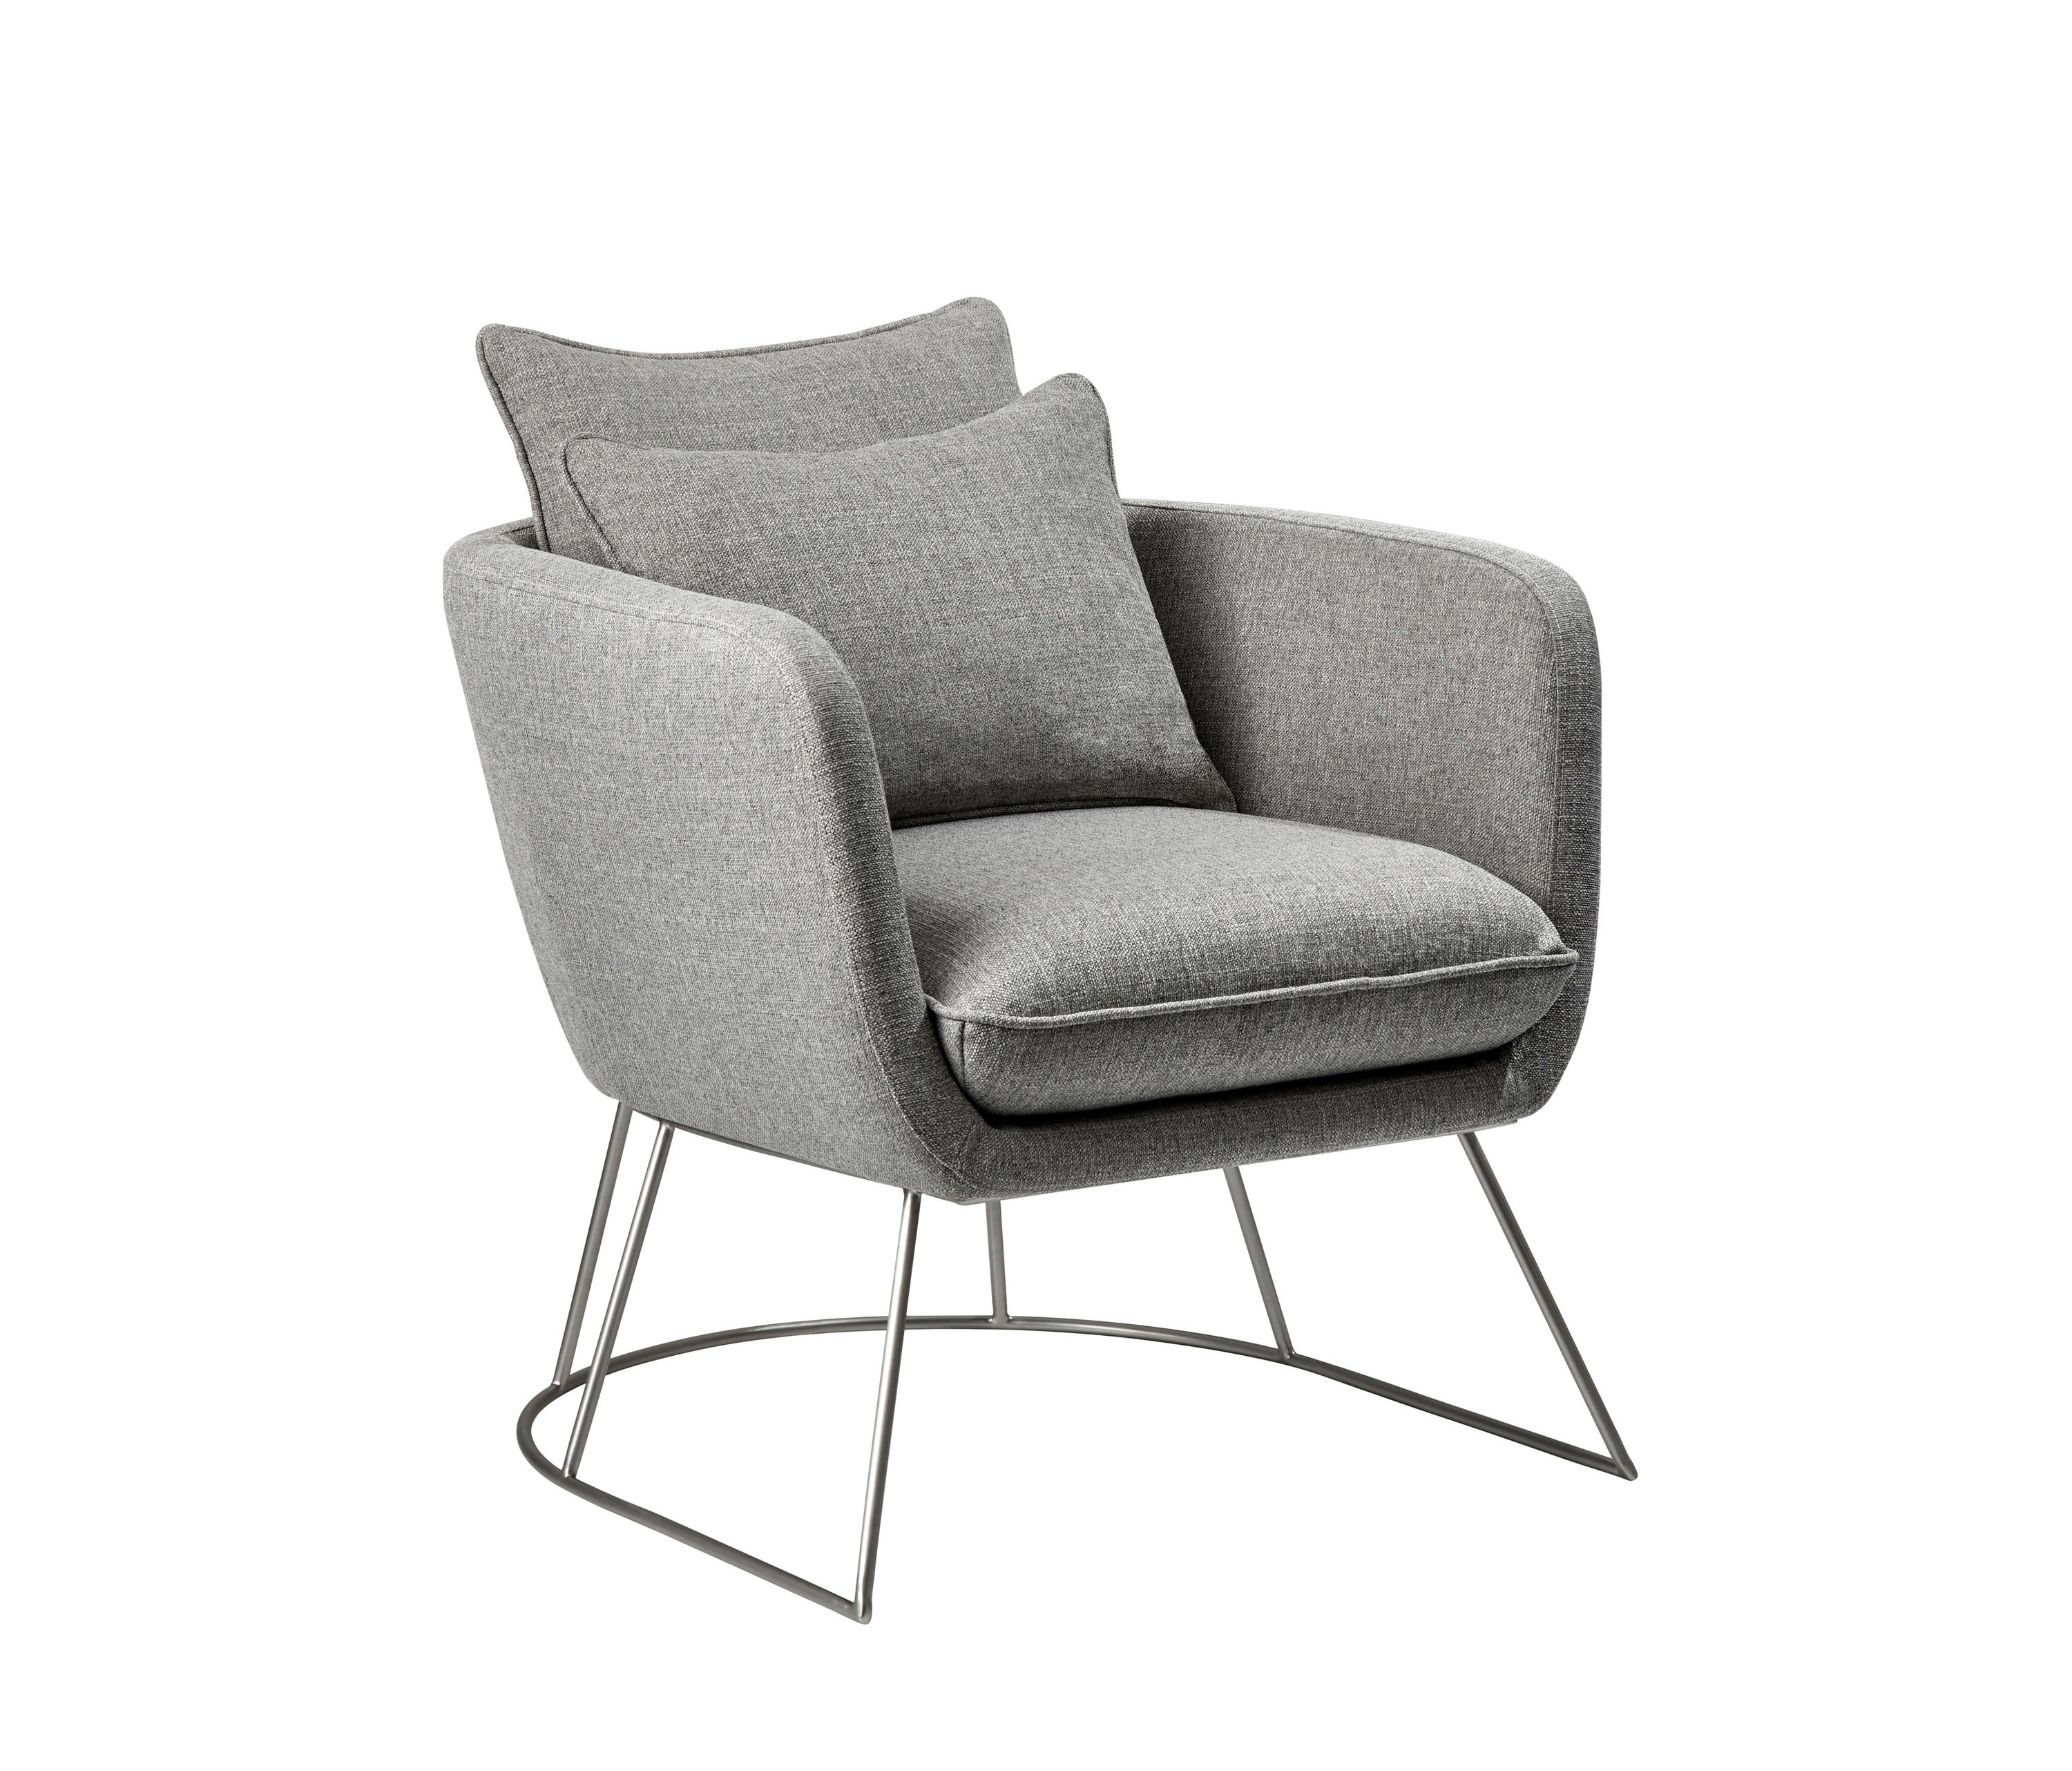 Stanley Chair by ADS360 | Armchairs ...  sc 1 st  Architonic & STANLEY CHAIR - Armchairs from ADS360 | Architonic